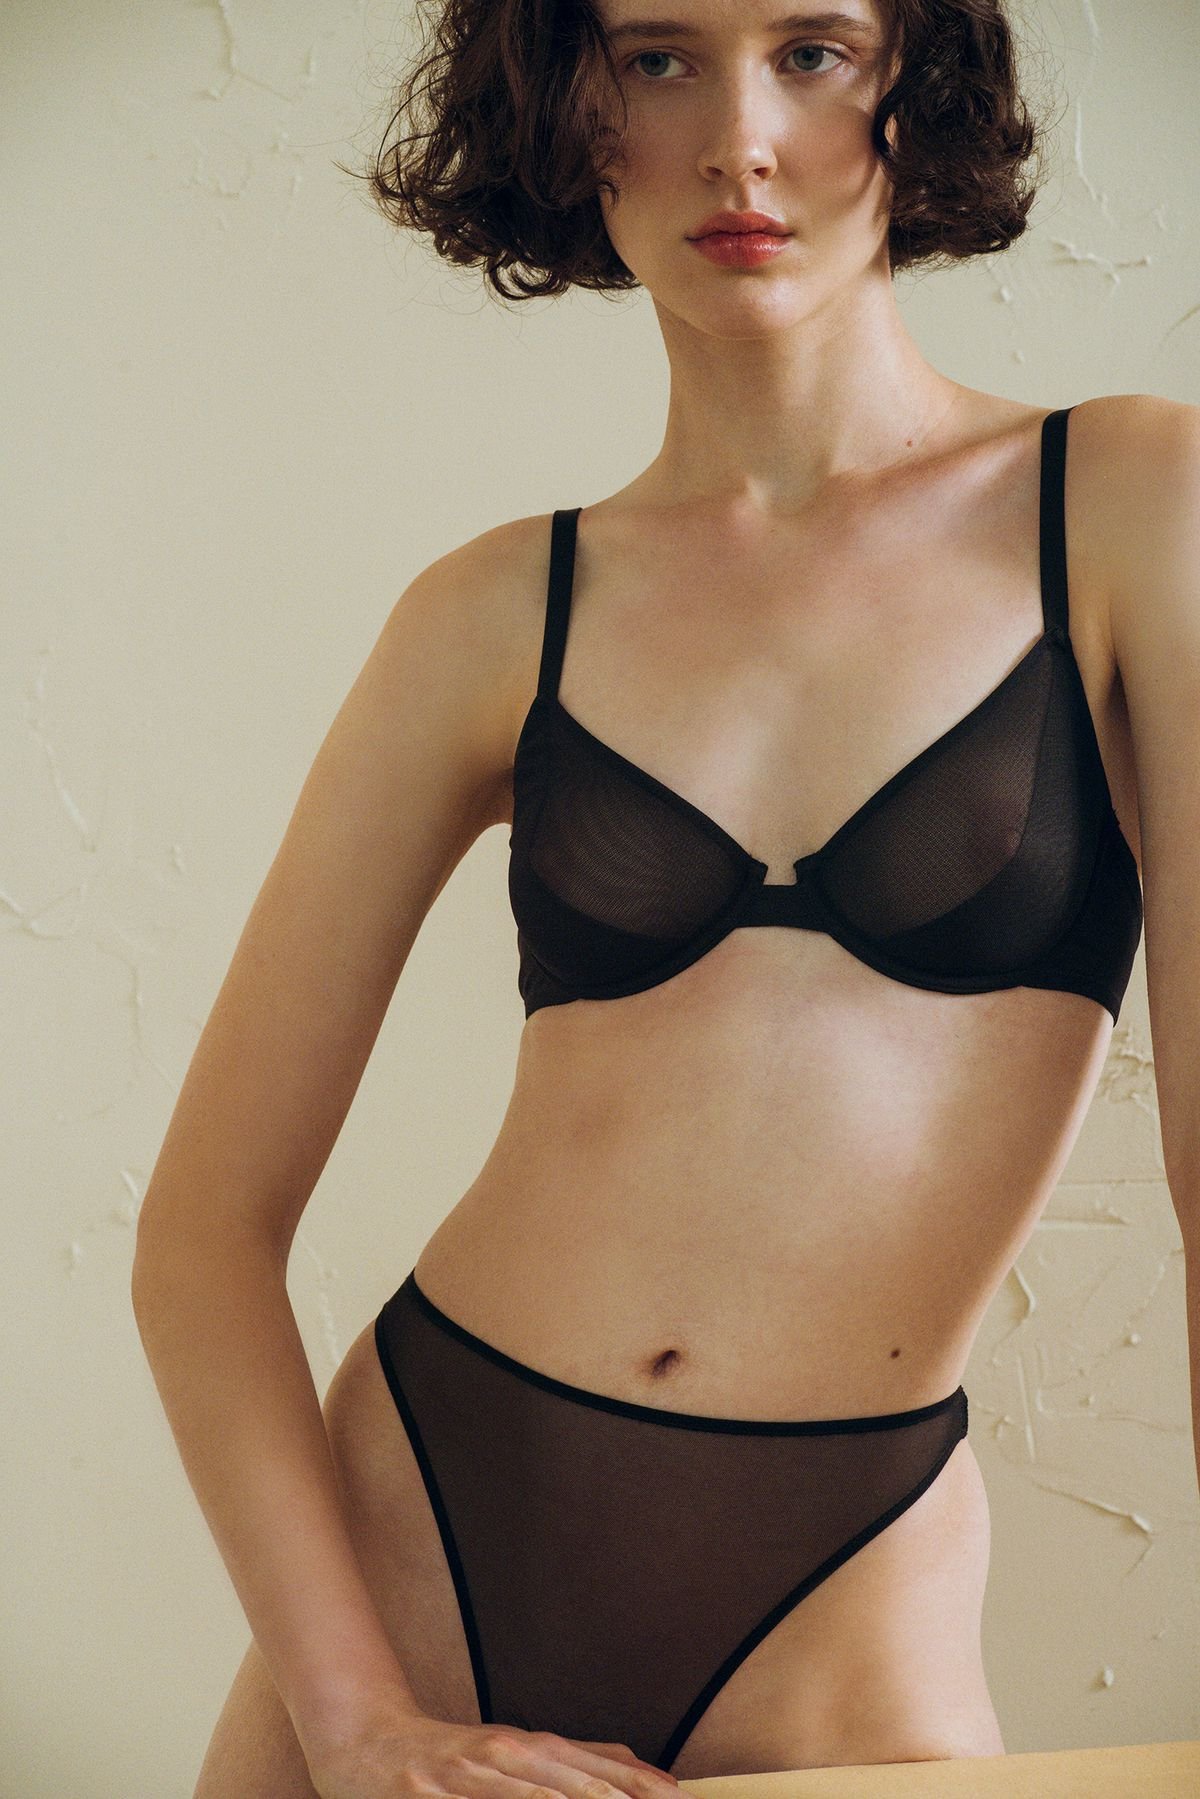 A model in a sheer black lingerie set from The Great Eros